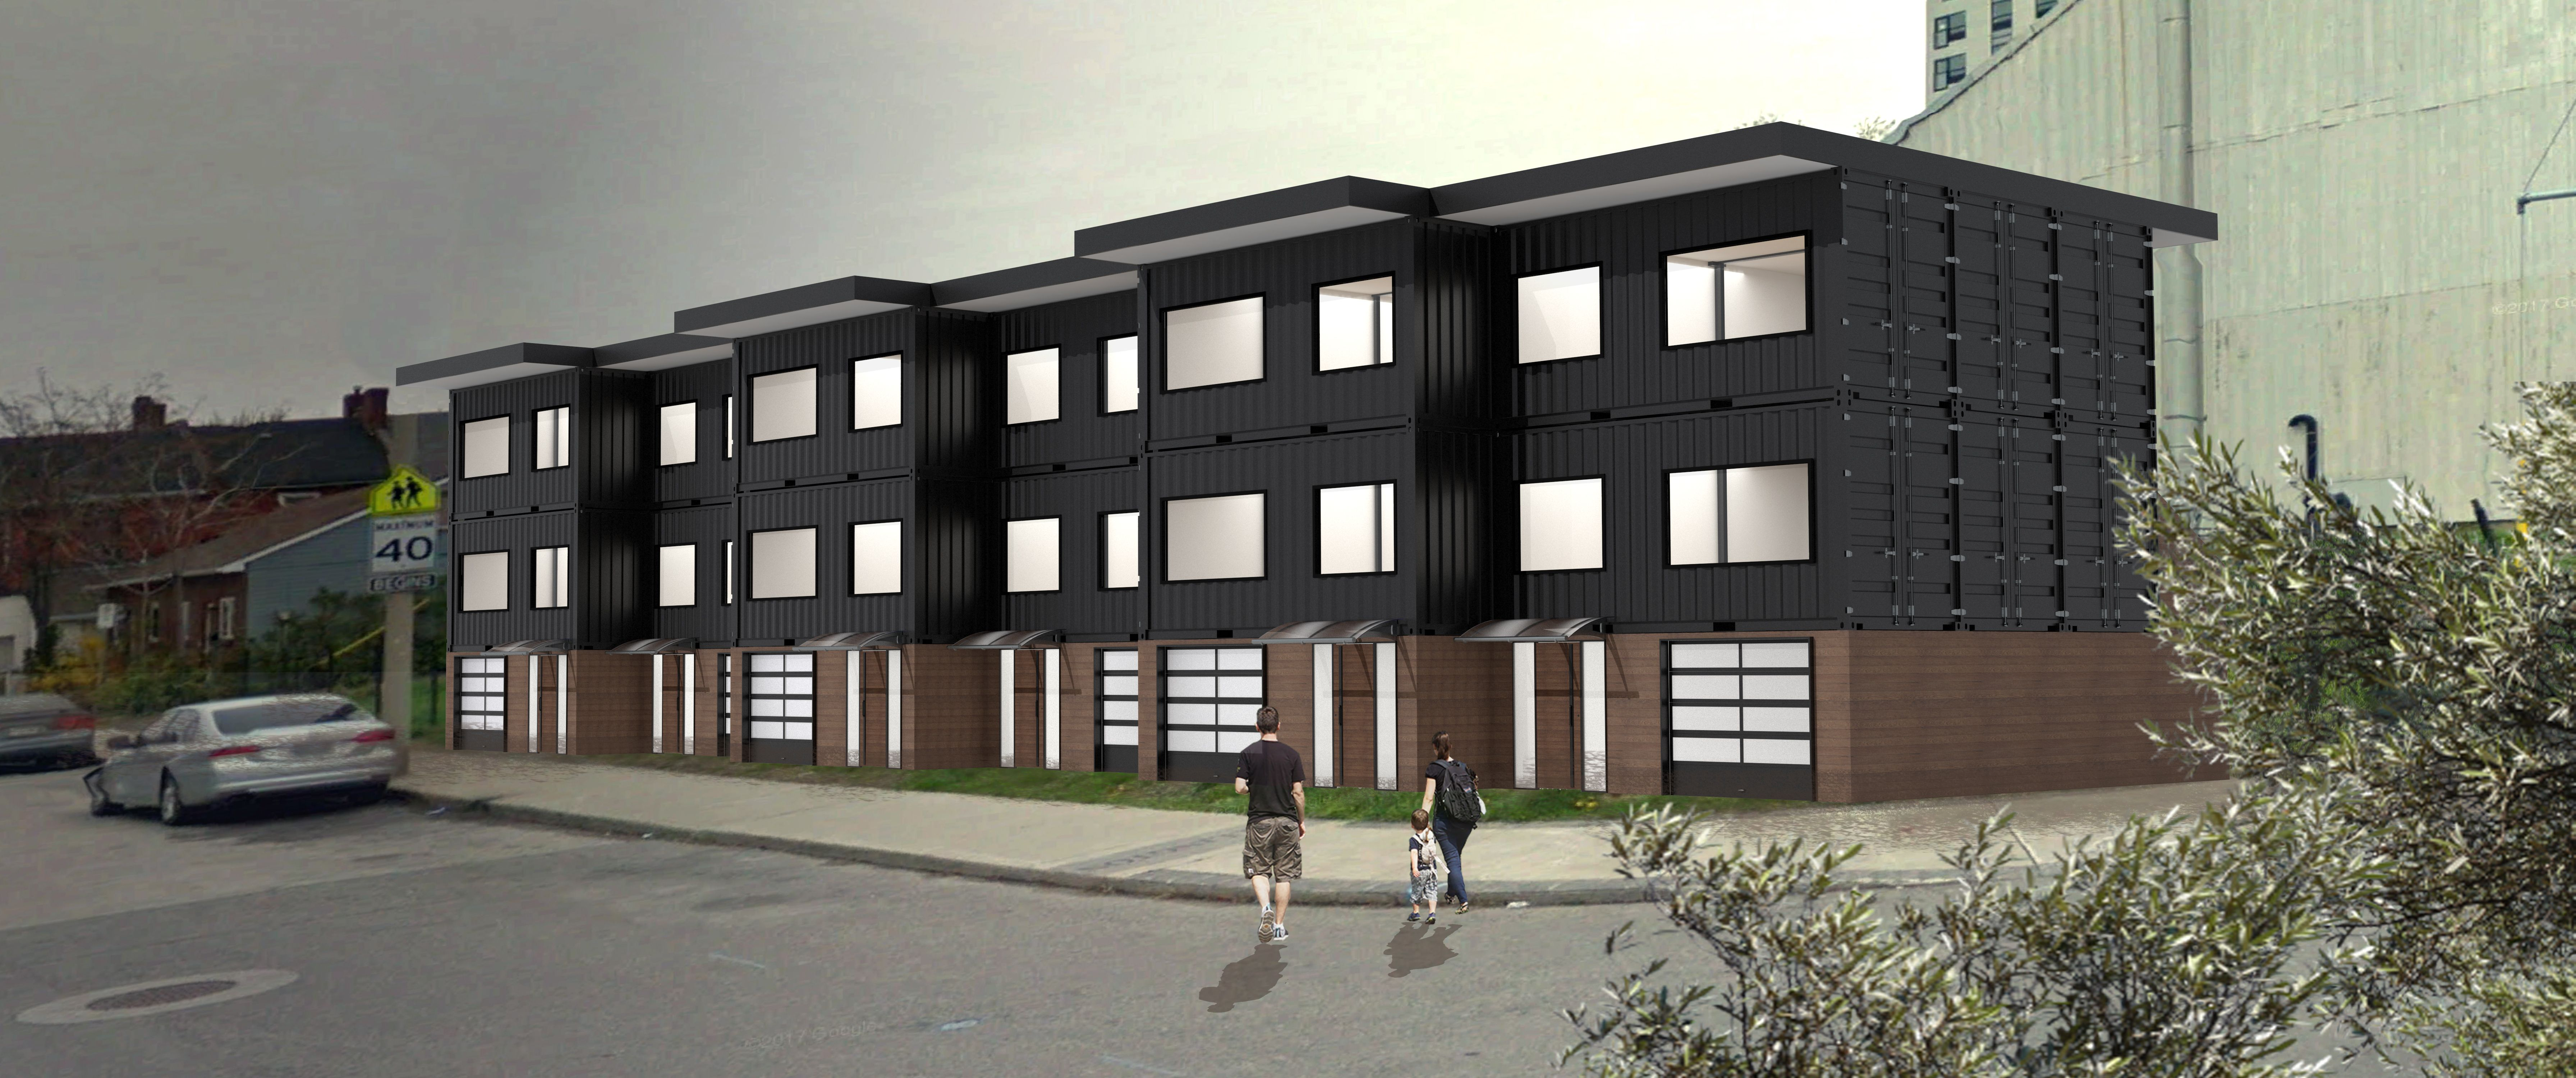 Idea For Prefabricated Shipping Container Apartment Buildings